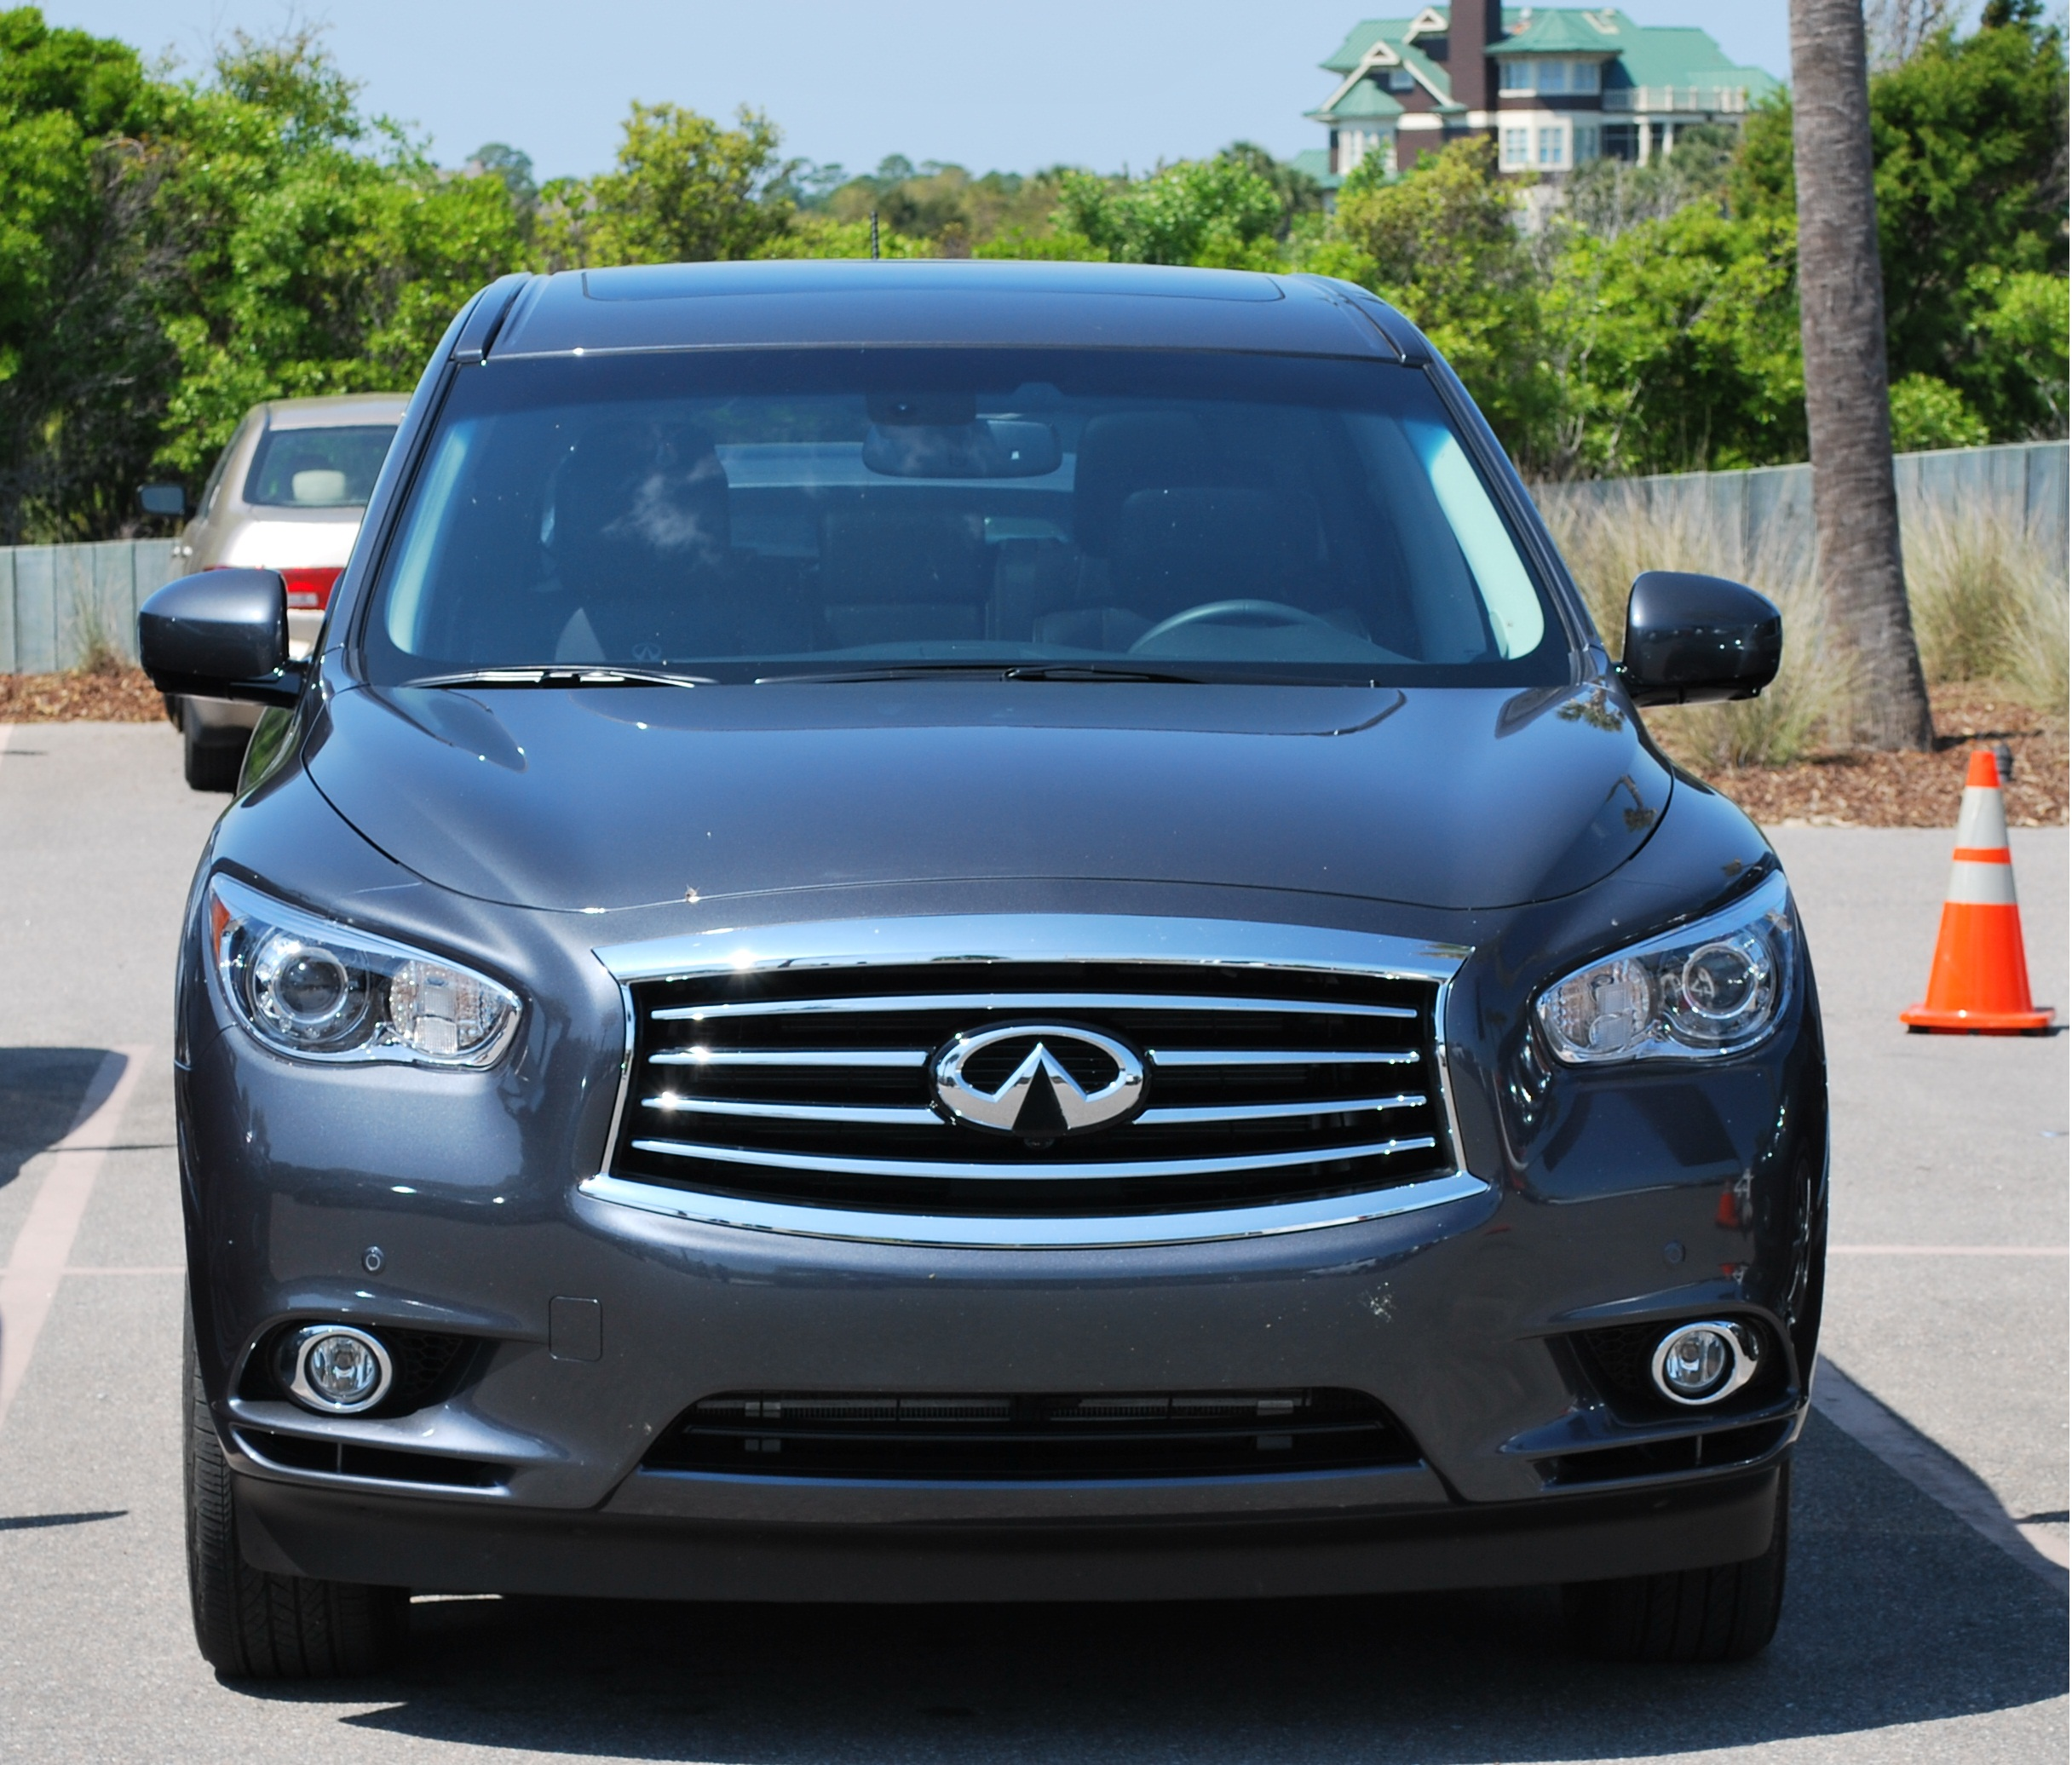 2012 Infiniti Qx Interior: 2013 Infiniti JX35 AWD Review And Test Drive